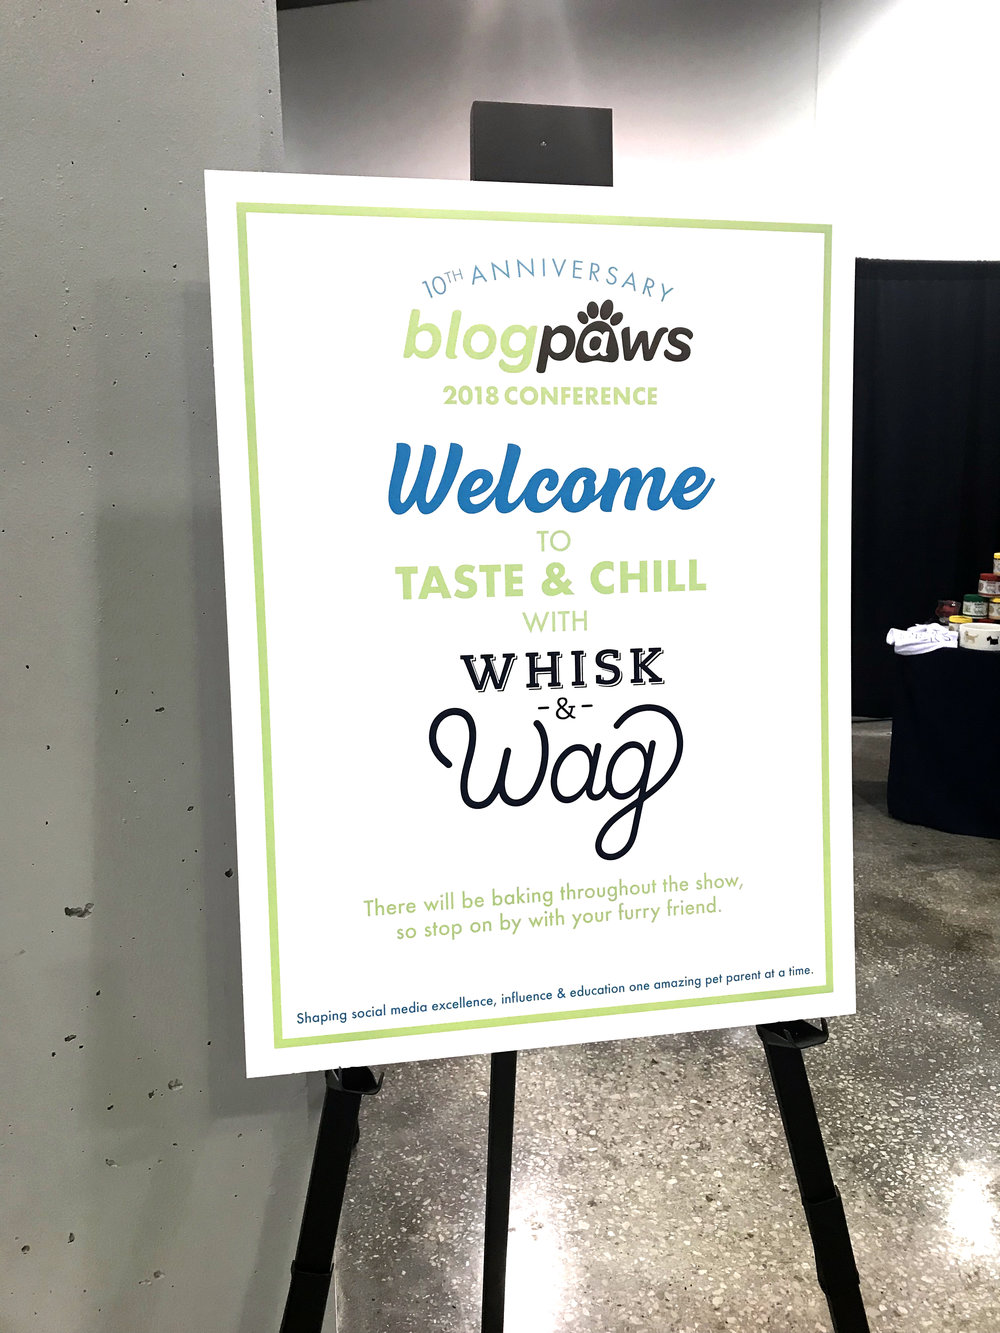 Whisk & Wag at BlogPaws